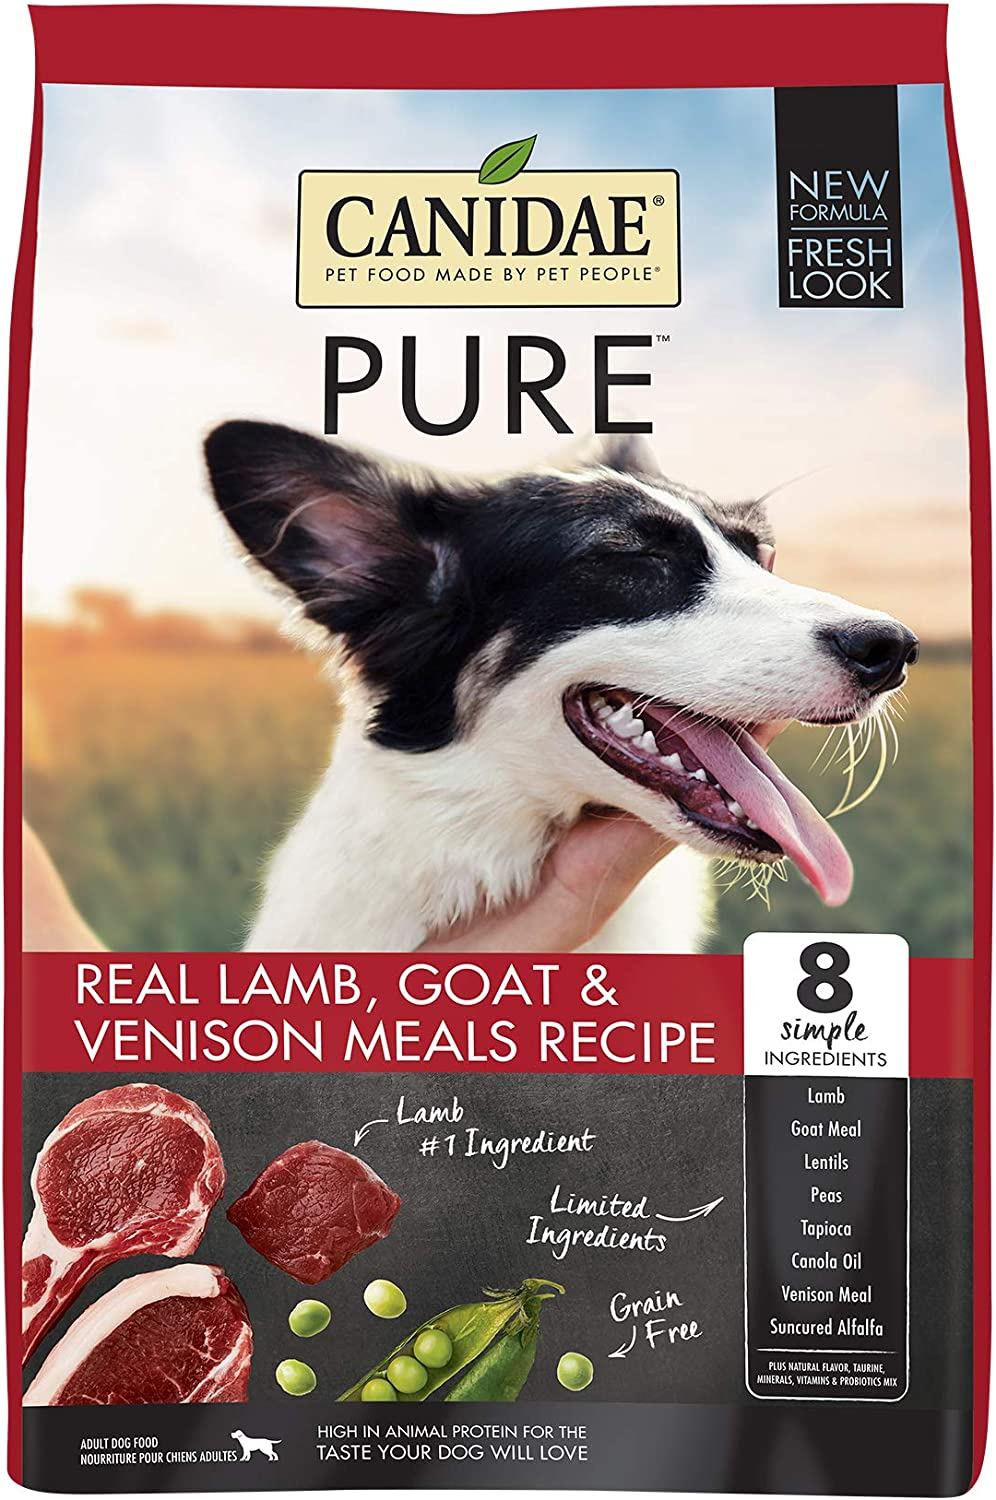 Canidae PURE Grain Free, Limited Ingredient Dry Dog Food, Lamb, Goat and Venison, 12lbs